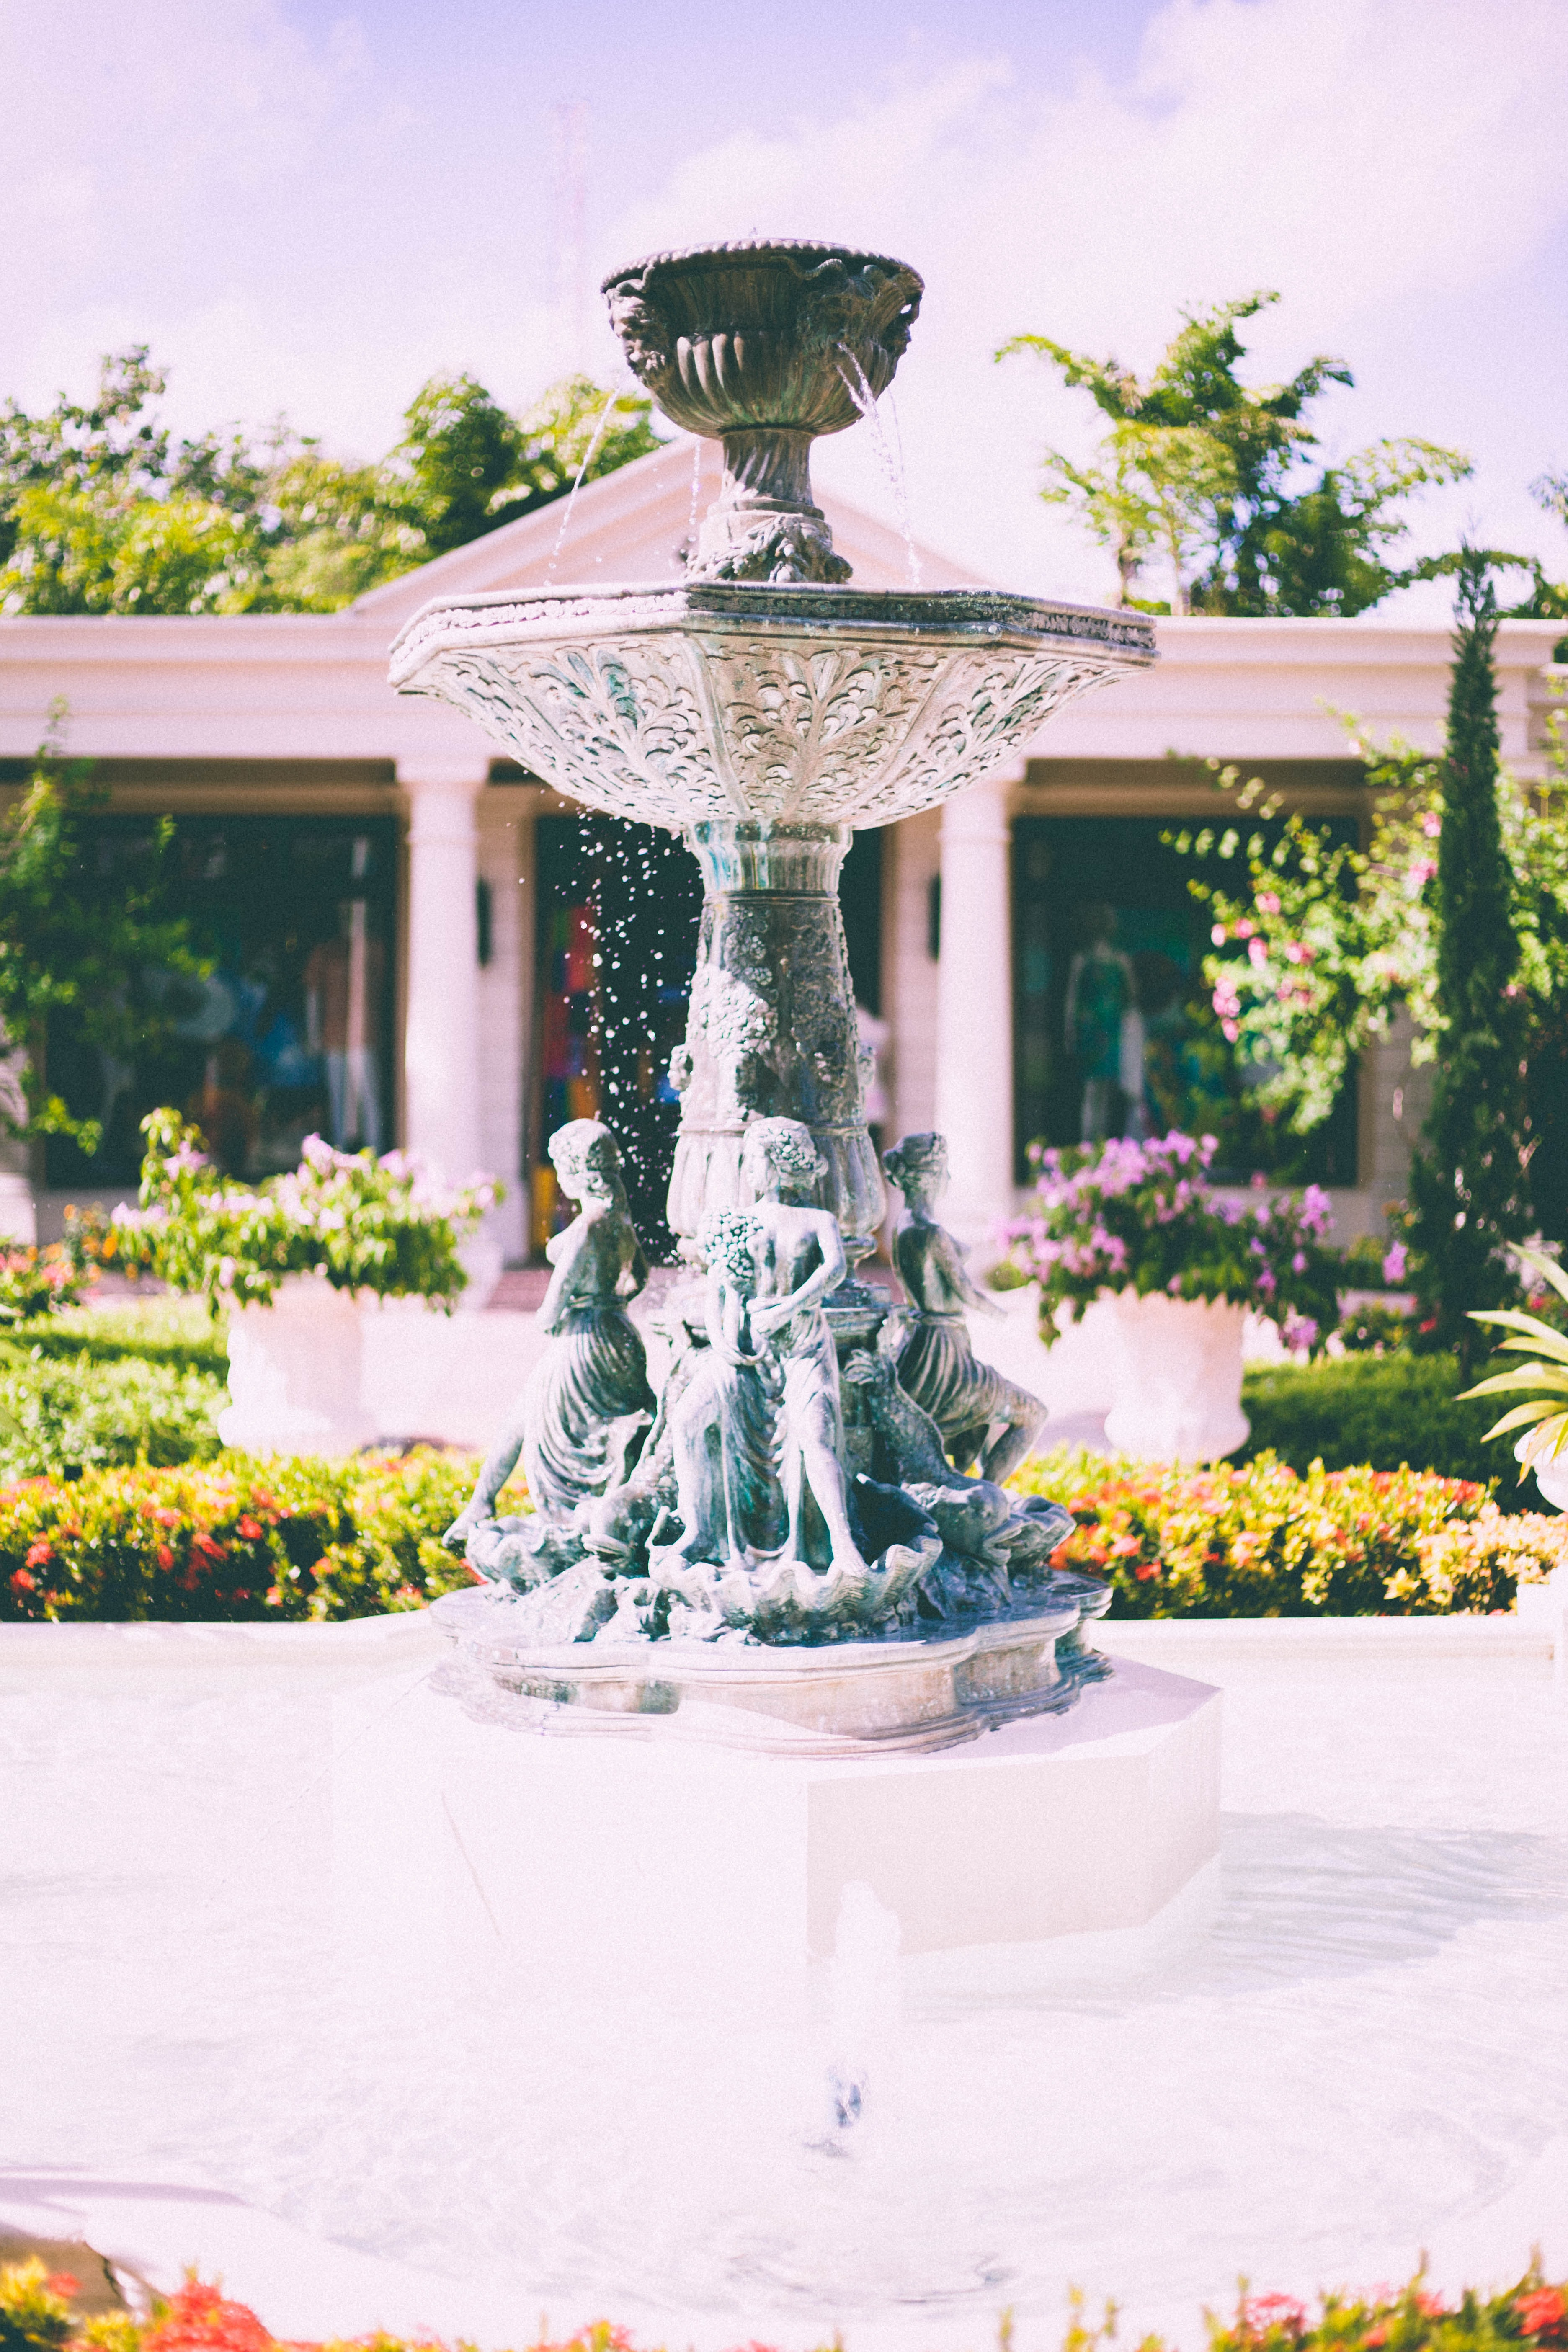 An ornate fountain in the middle of a garden in front of a classical building